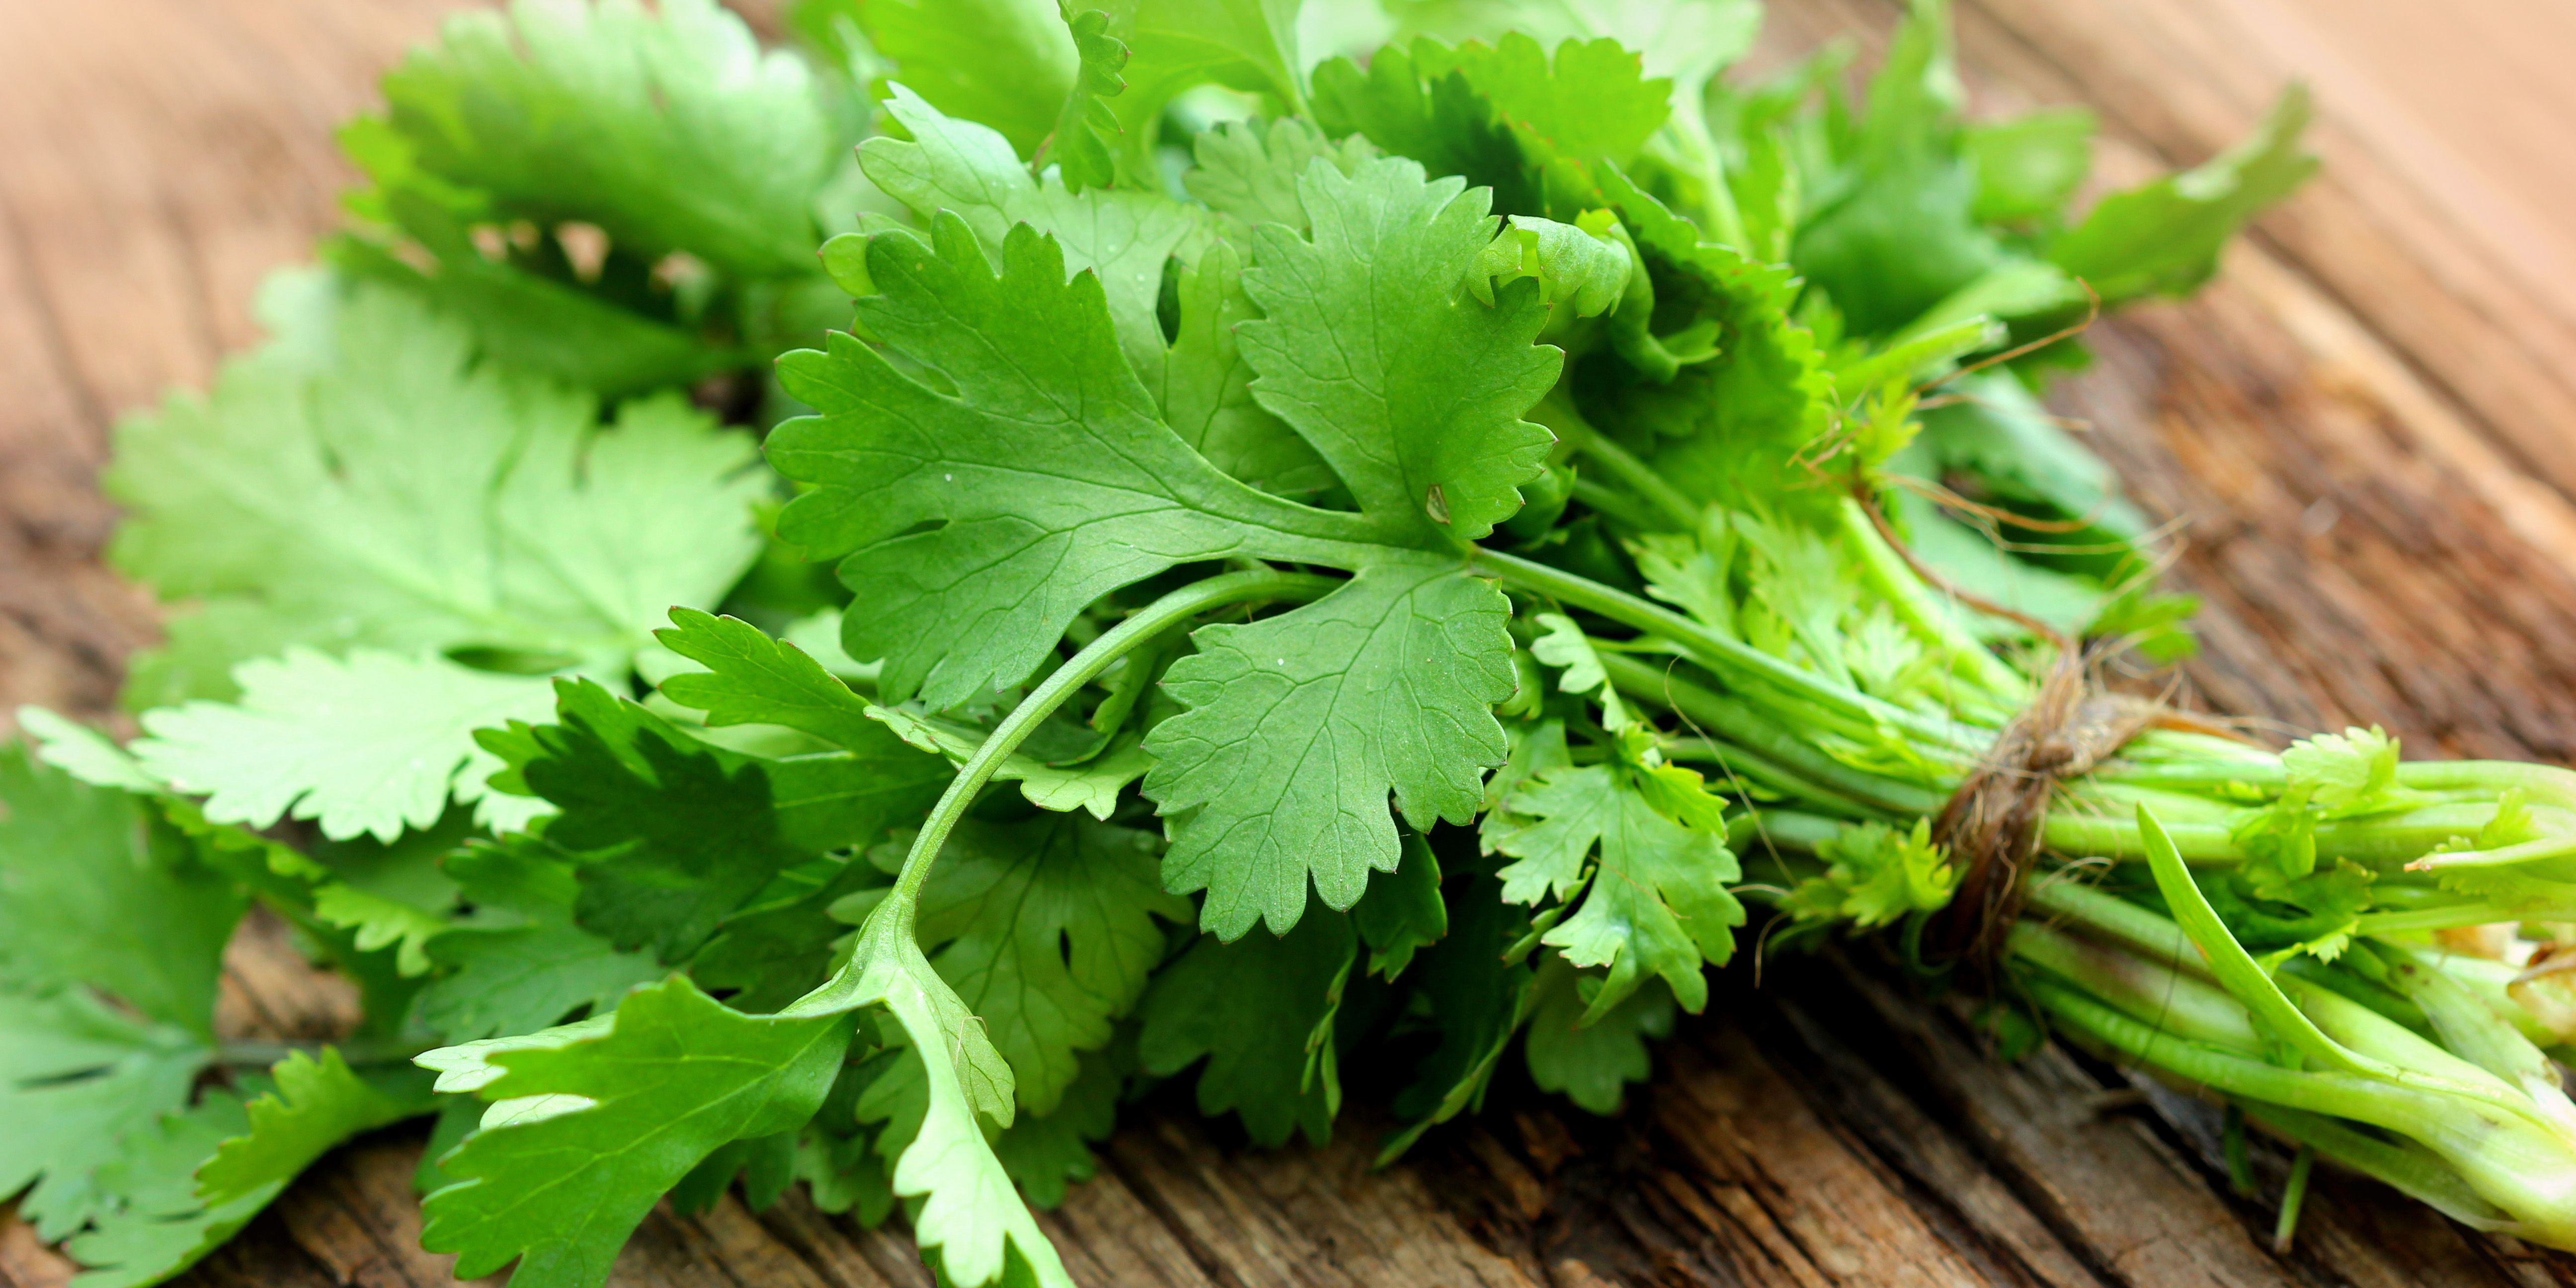 Bunch of fresh coriander on a wooden table